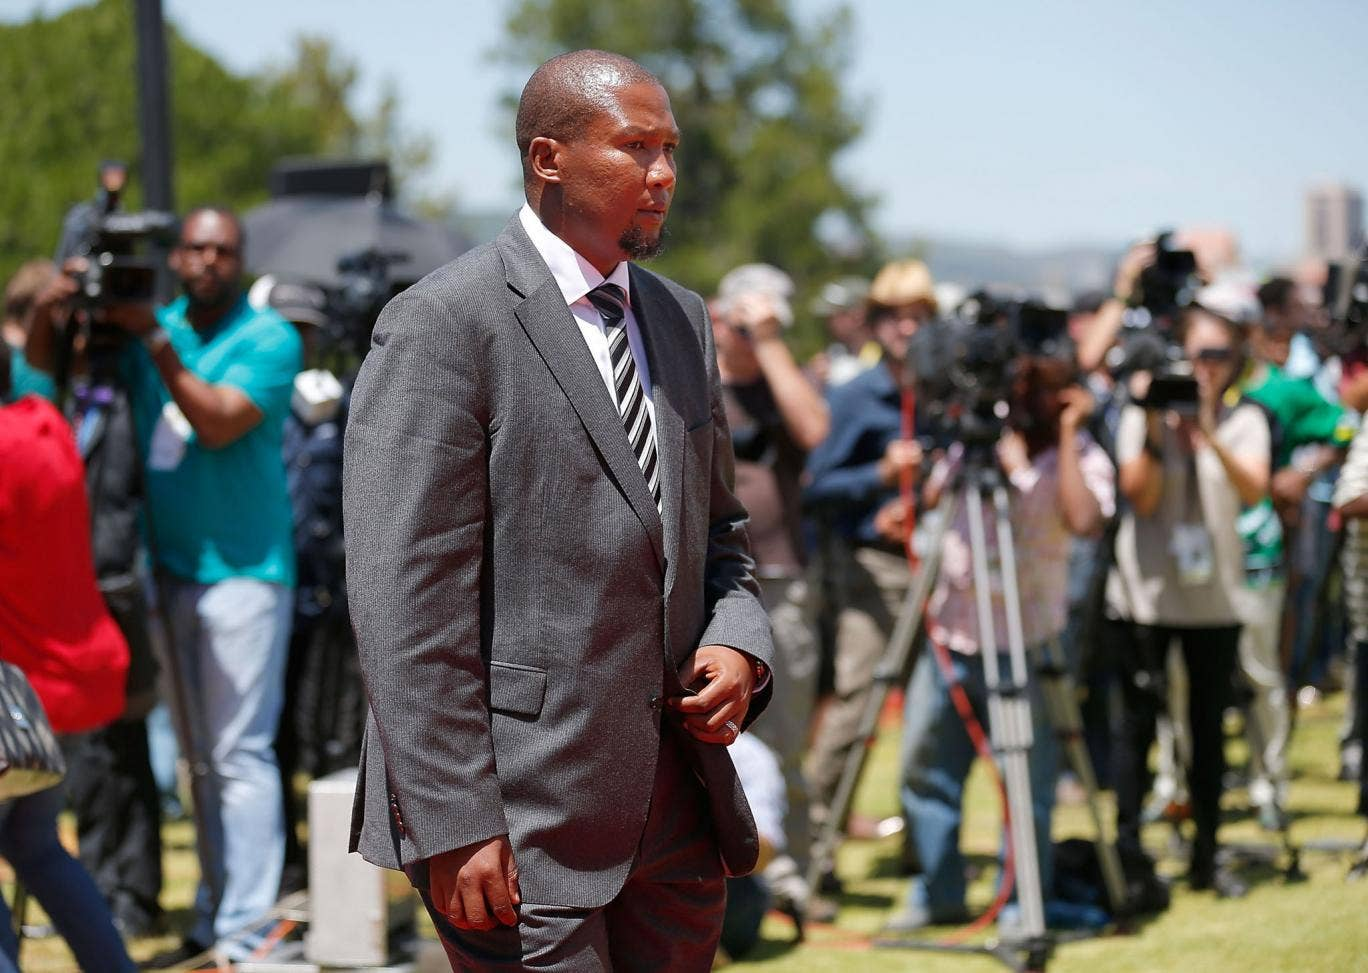 The locks at the home of Nelson Mandela's eldest grandson Mandla Mandela in Qunu have been changed amid reports that a long-standing family feud is set to worsen in the wake of his death.